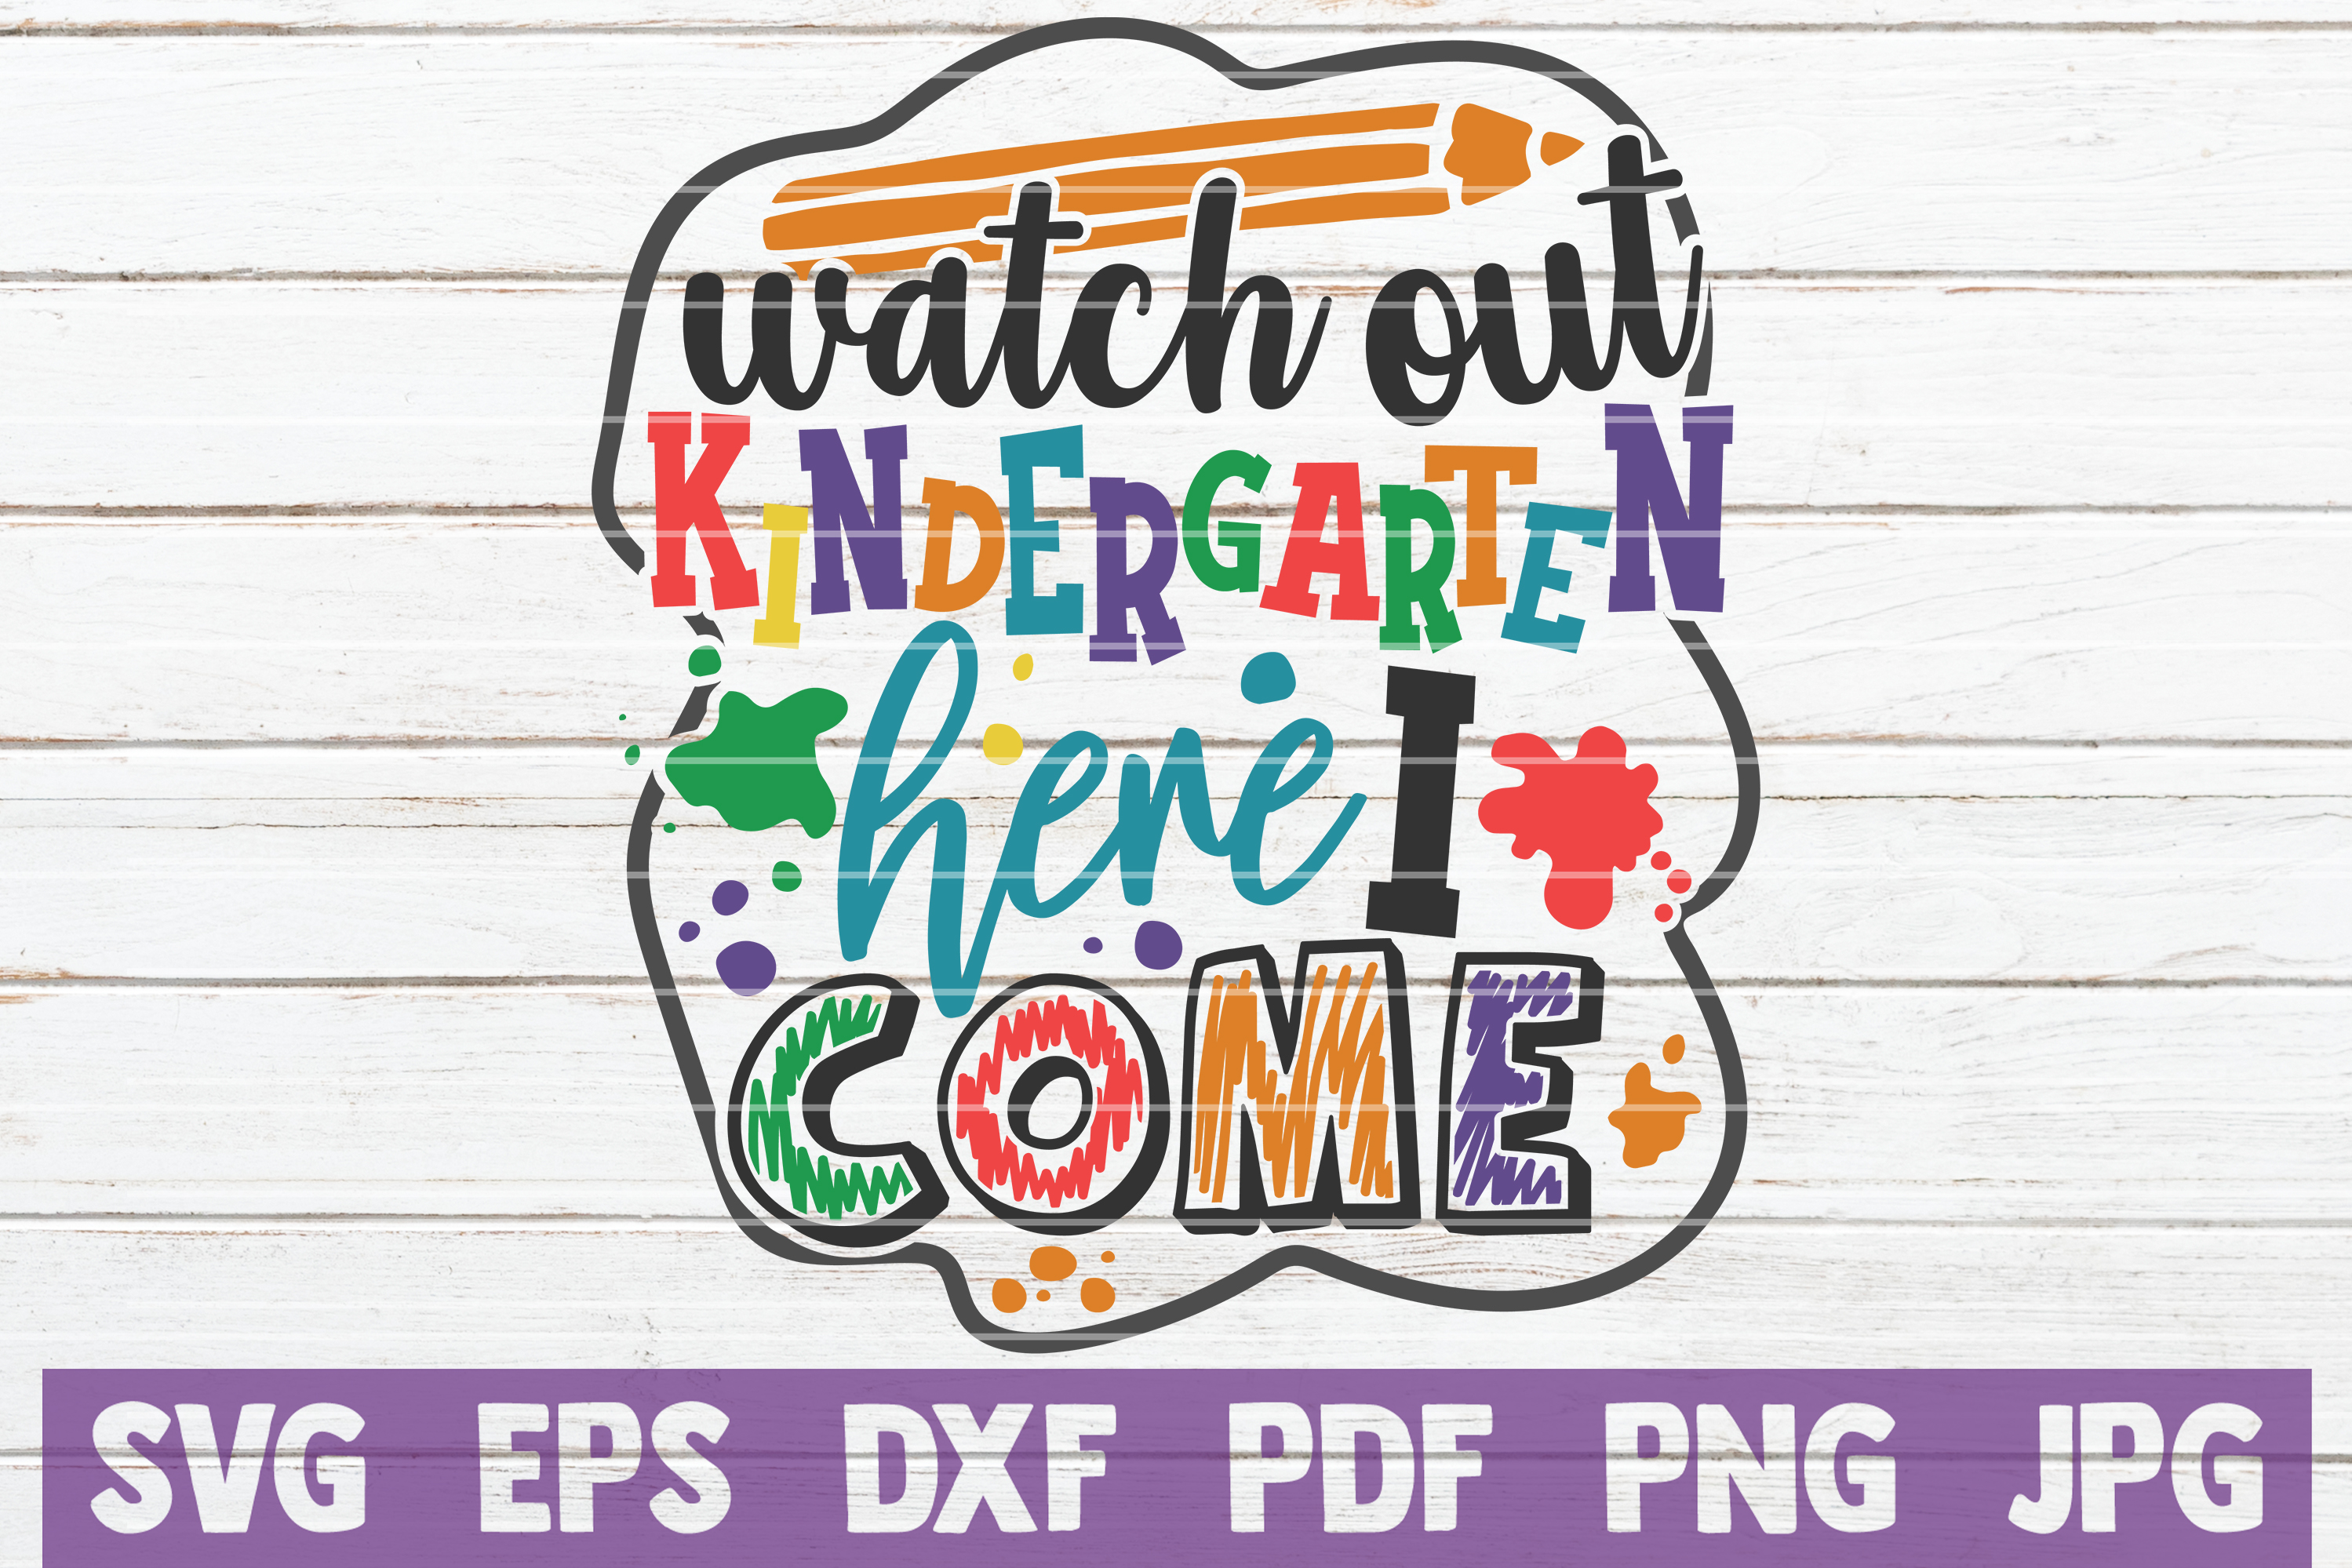 Watch Out Kindergarten Here I Come SVG Cut File example image 1